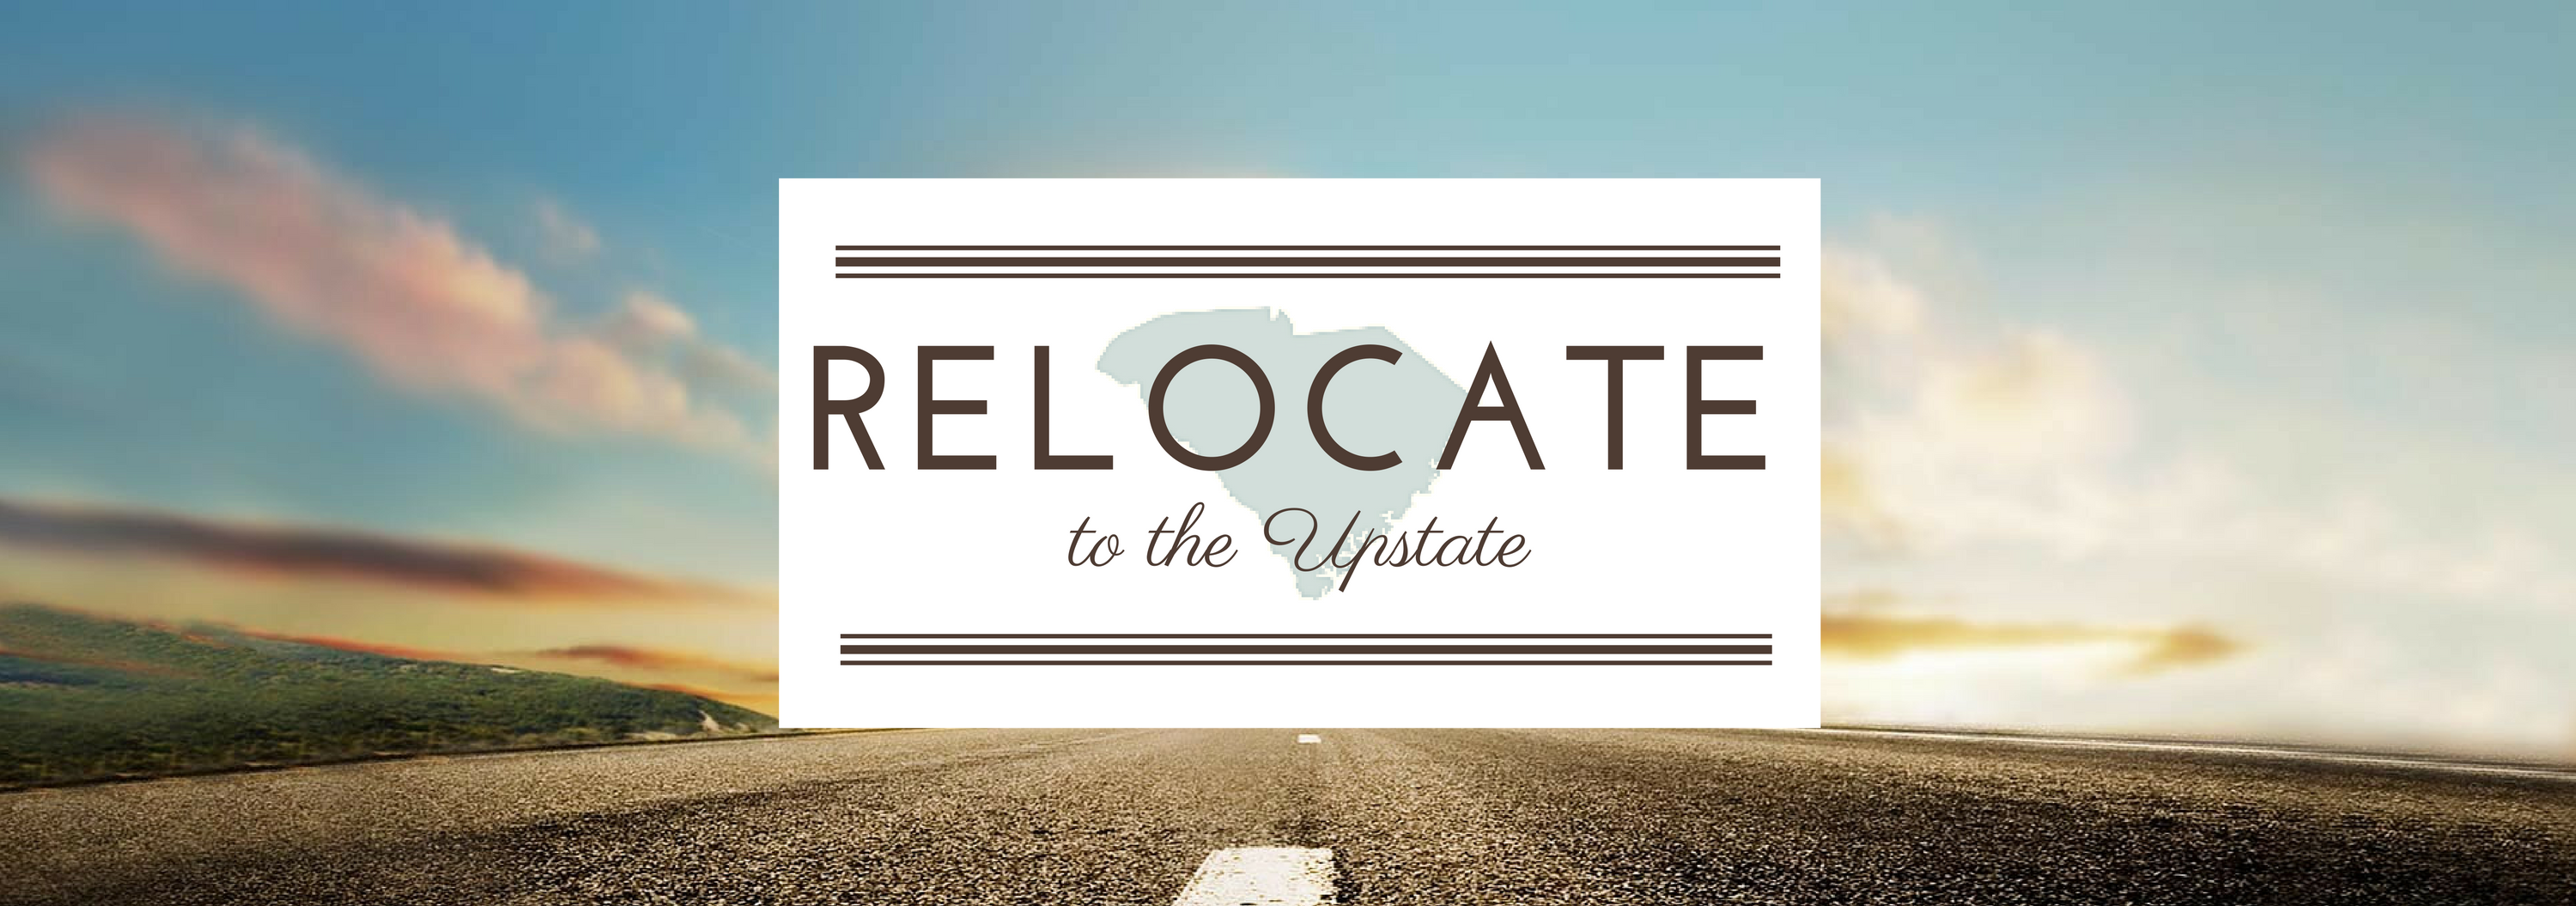 Relocate to the Upstate of South Carolina